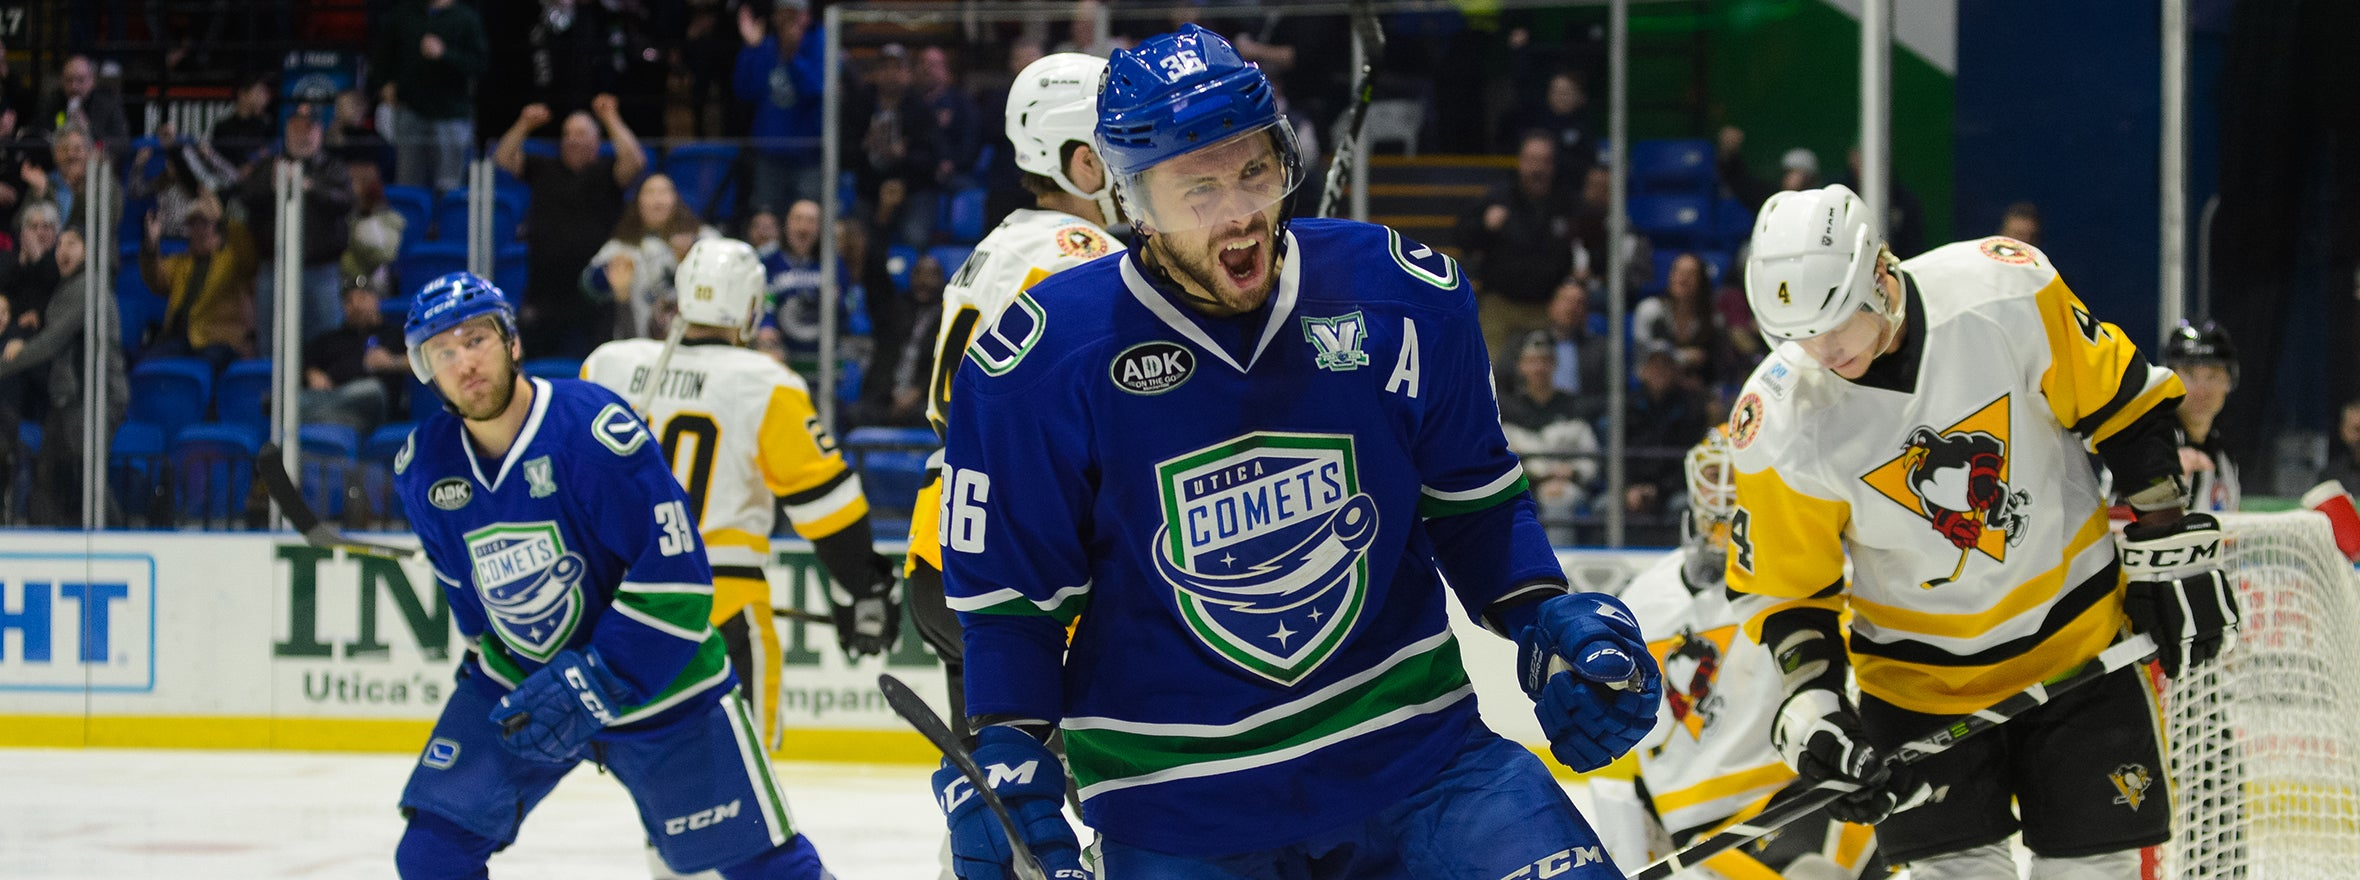 COMETS SIGN FORWARD WACEY HAMILTON TO A TWO-YEAR CONTRACT